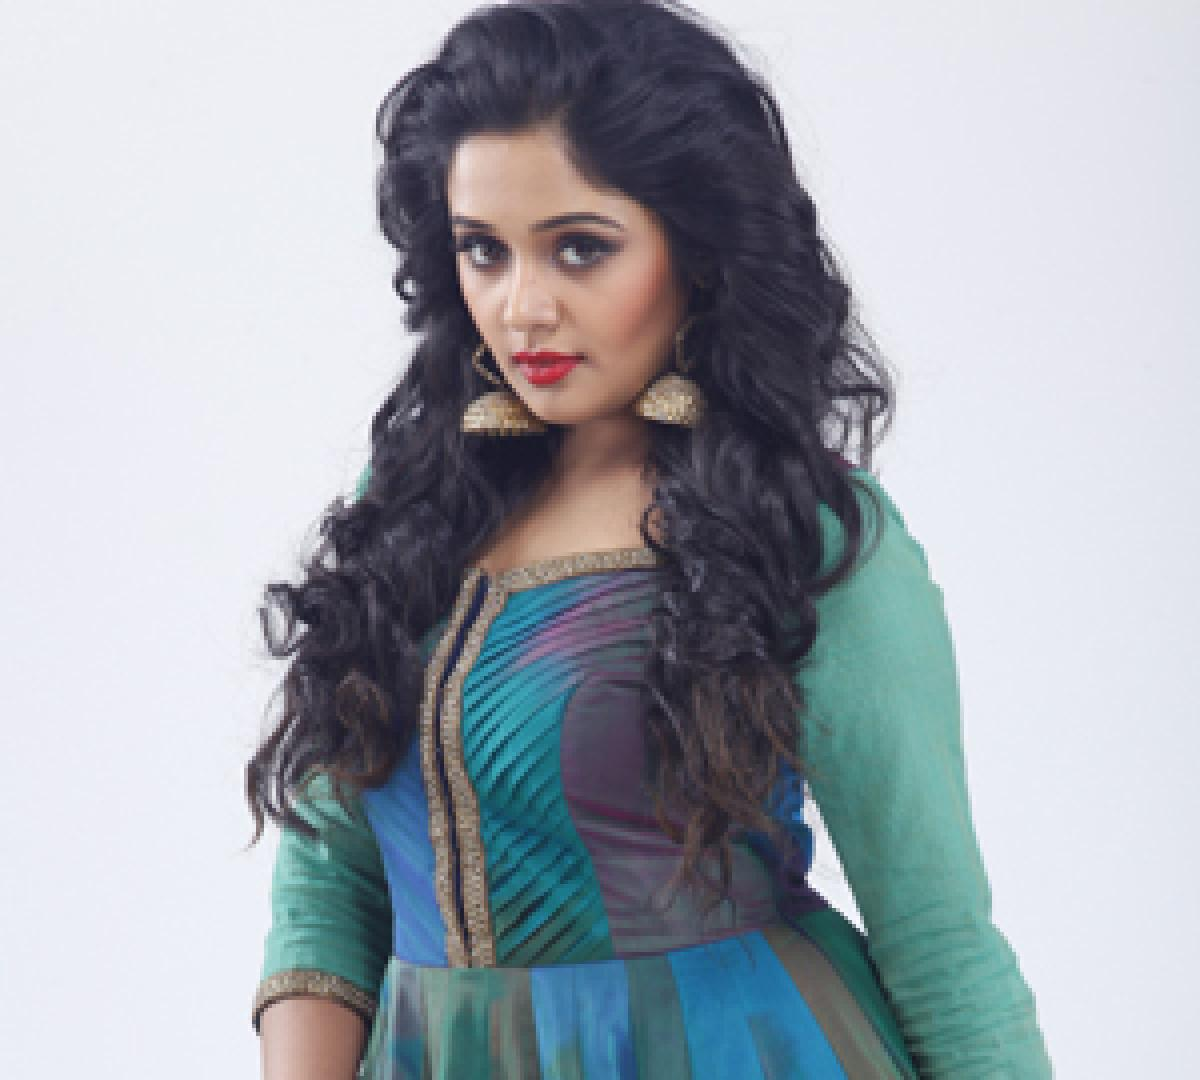 Ananya loves challenging roles